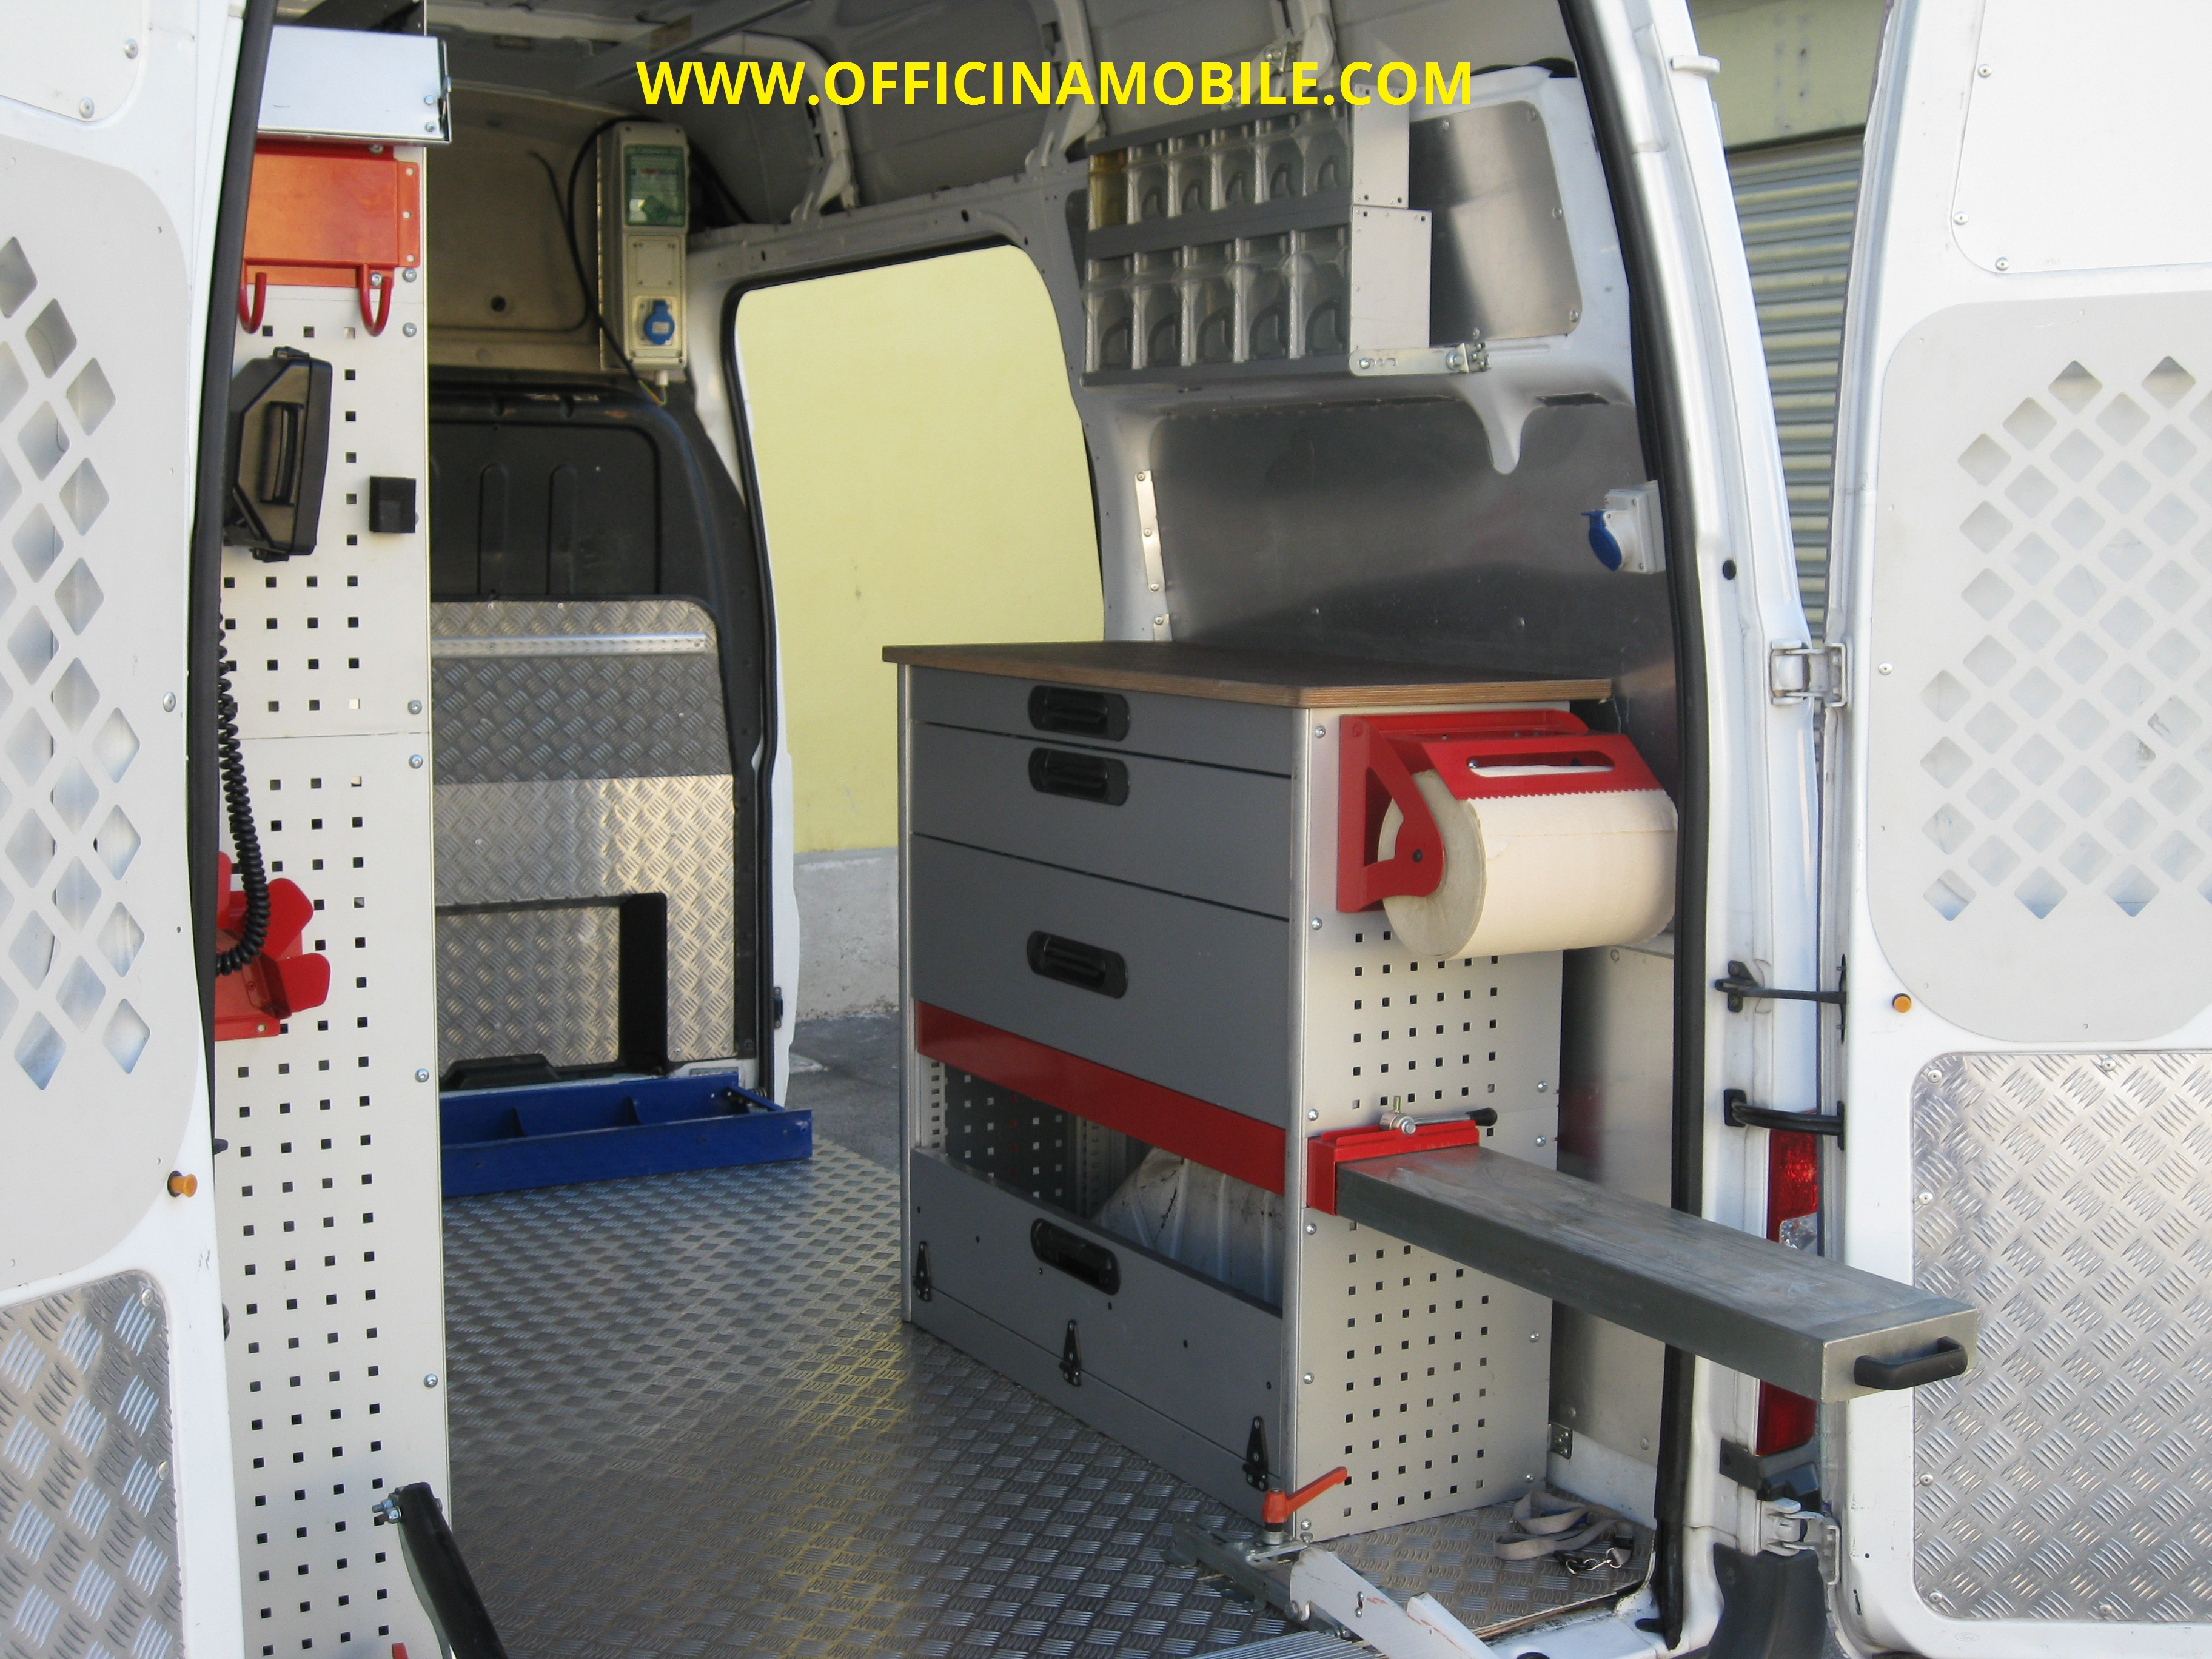 Officina mobile ford transit